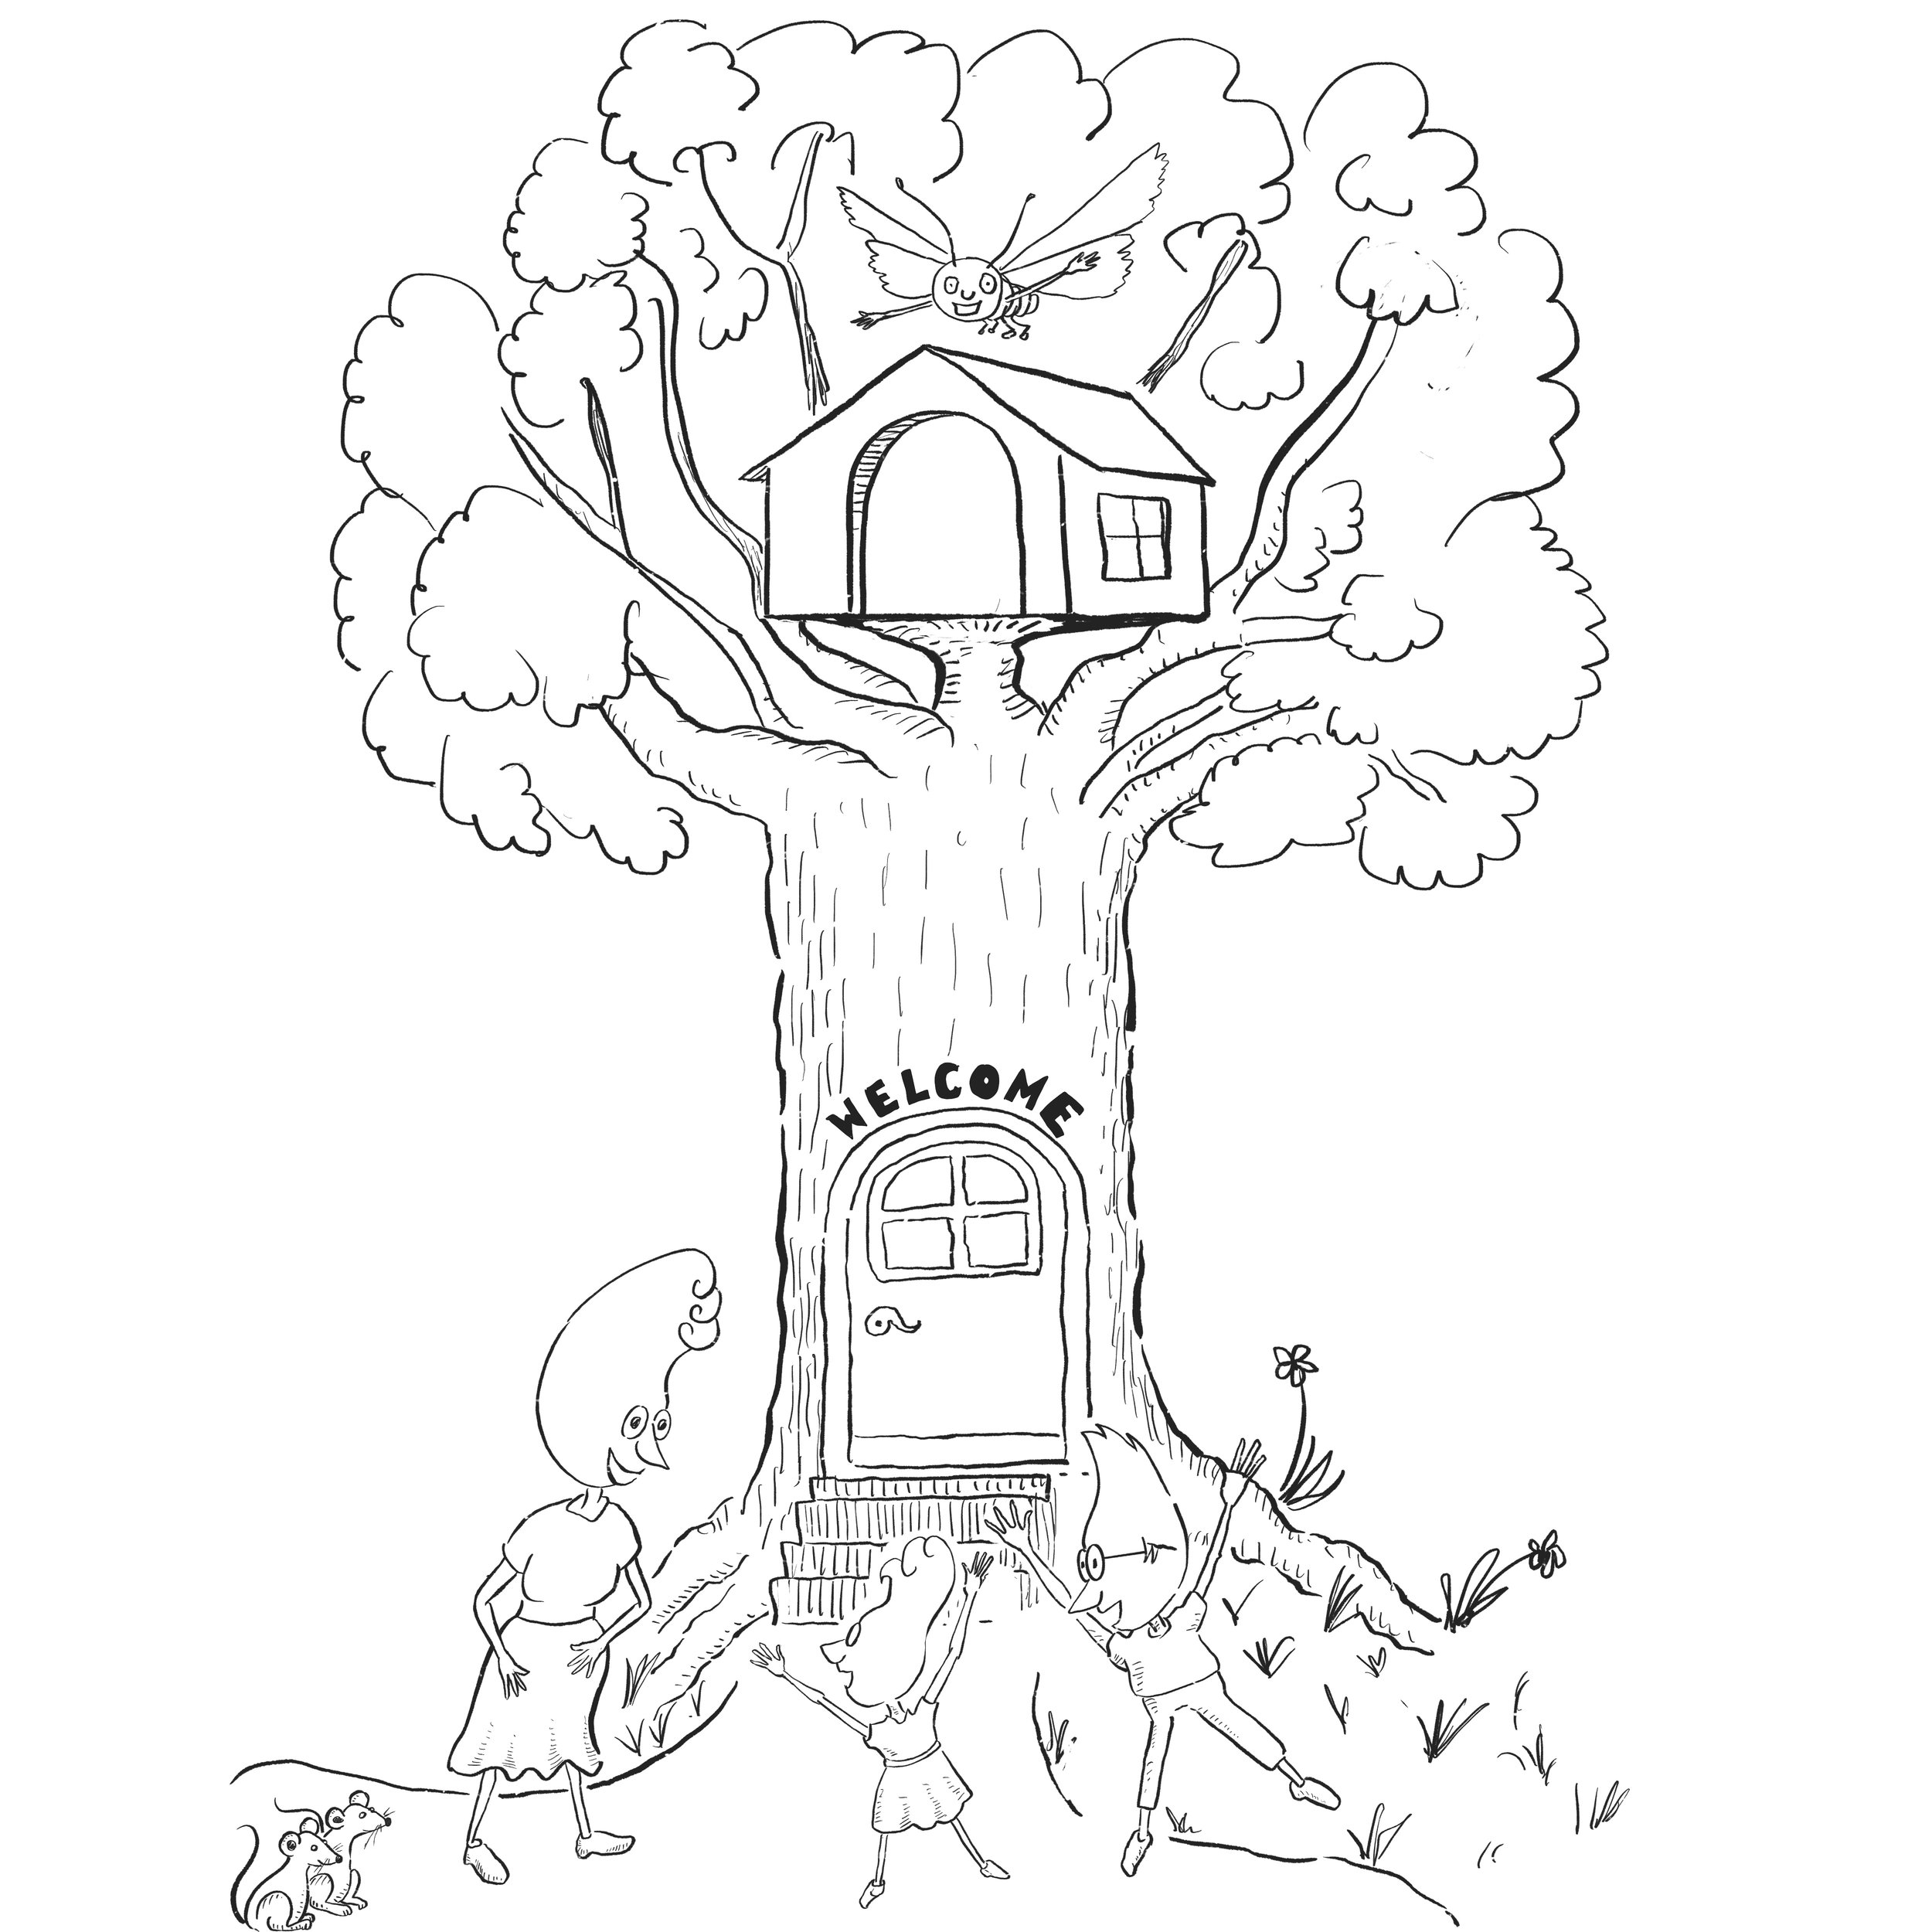 re-inking, Welcome to new home, children's book, Procreate